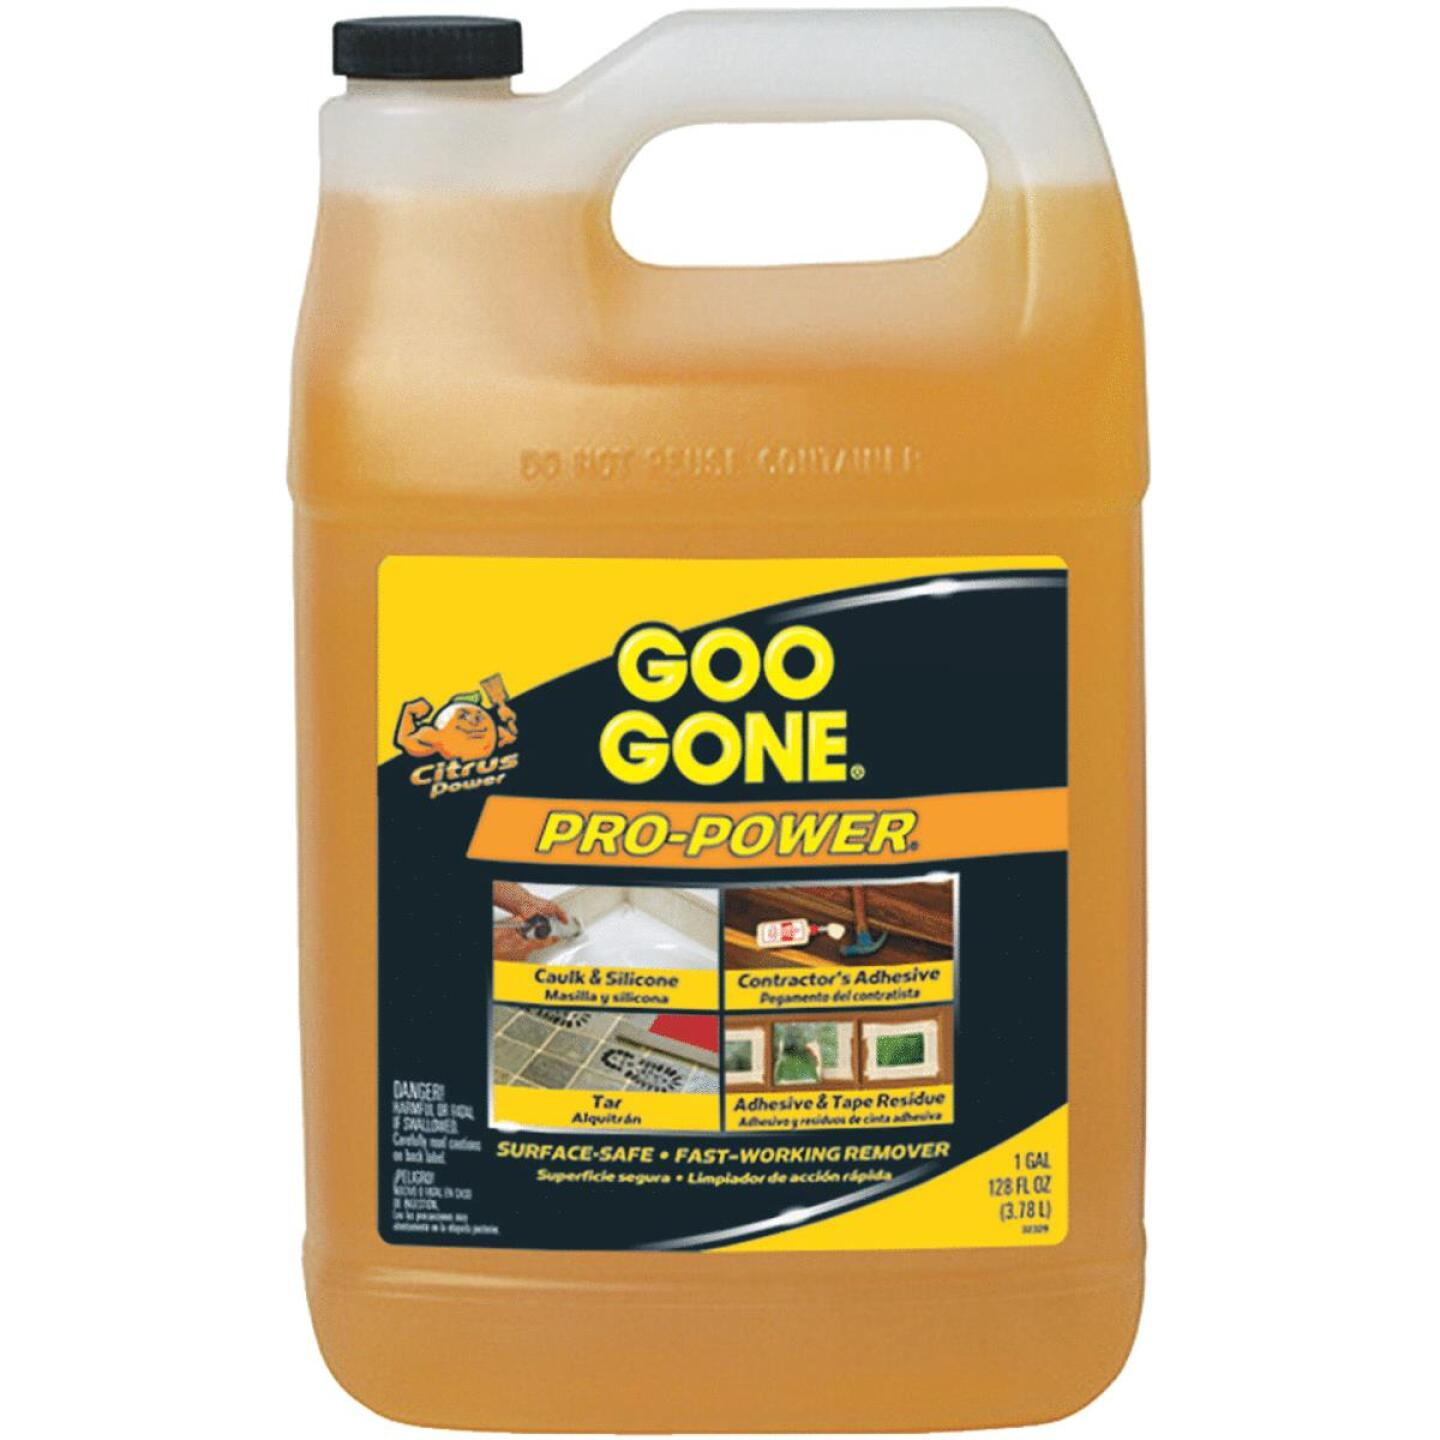 Goo Gone 1 Gal. Pro-Power Adhesive Remover Image 215